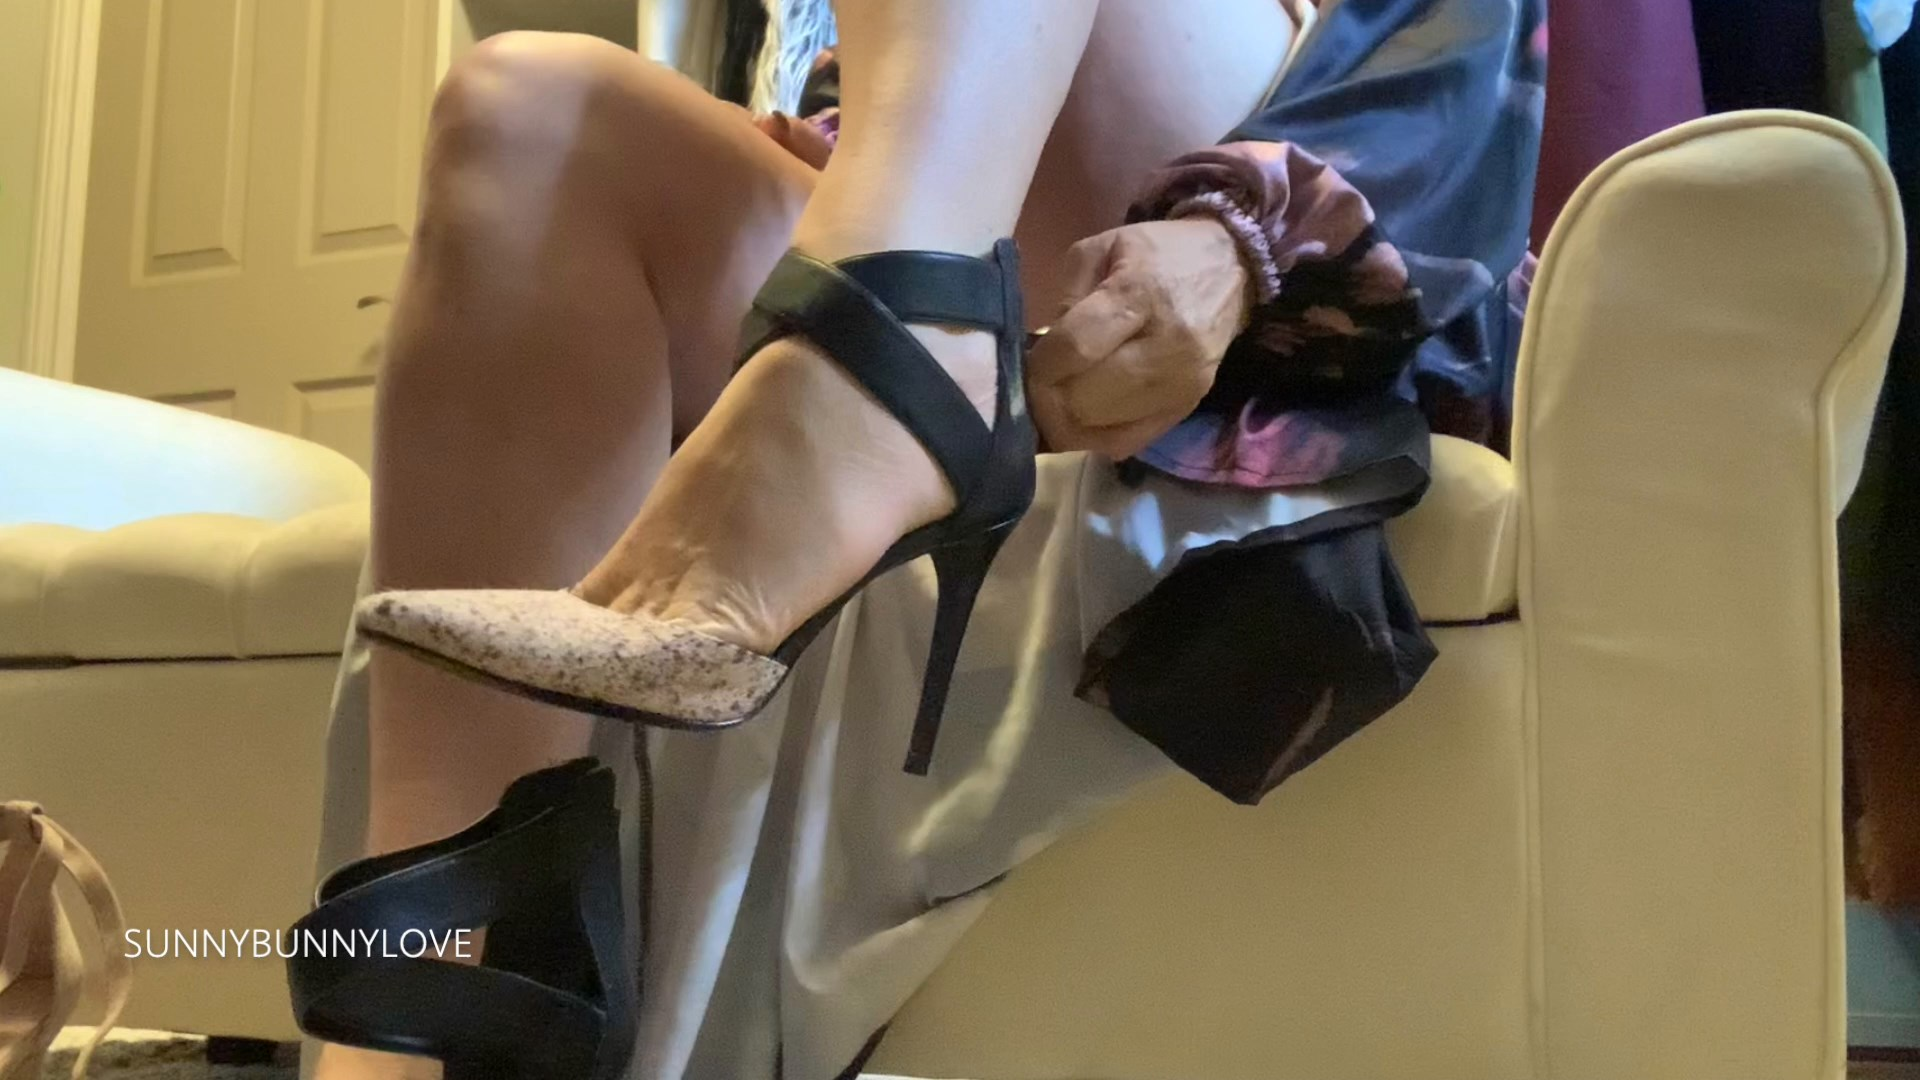 SunnyBunnyLove - Trying on heels with Mom